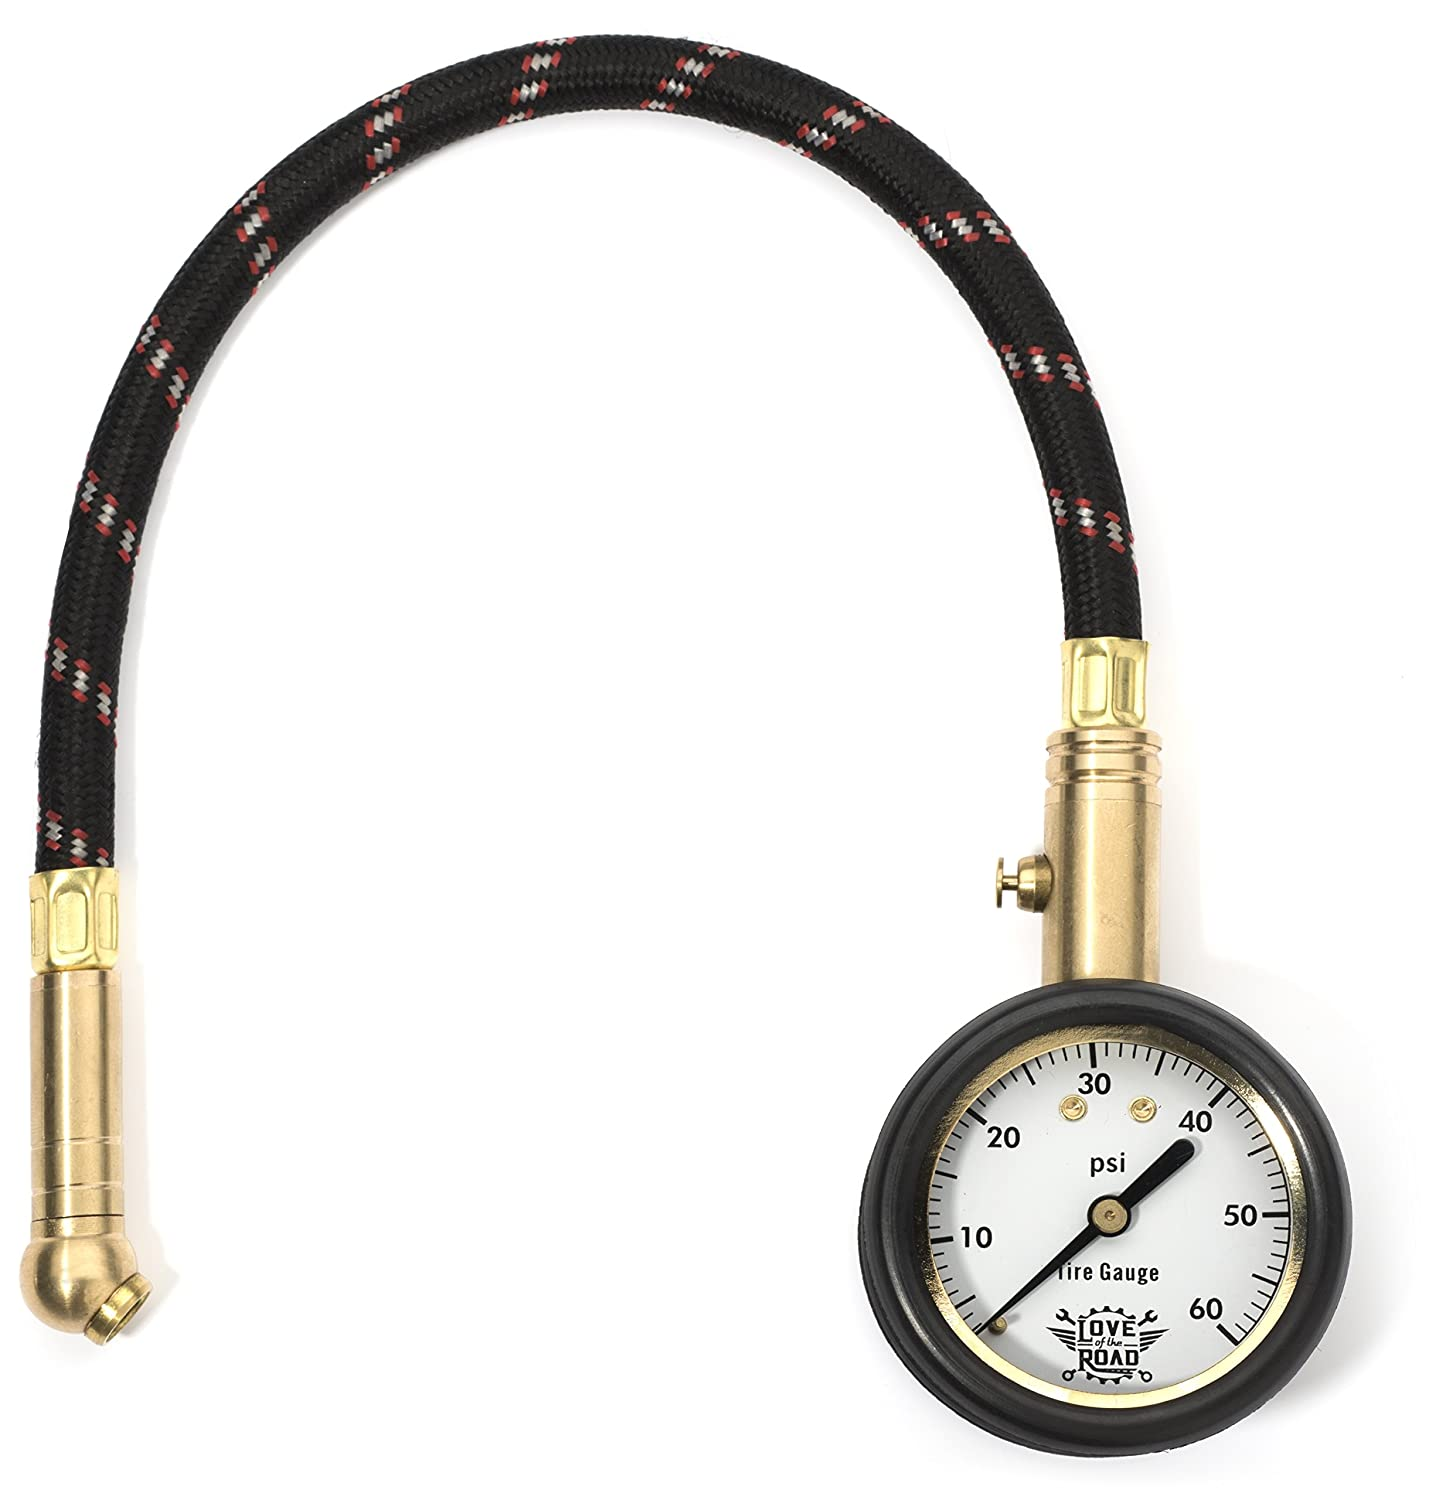 love of the road tire pressure gauge for tires 60 psi 646437719759 ebay. Black Bedroom Furniture Sets. Home Design Ideas